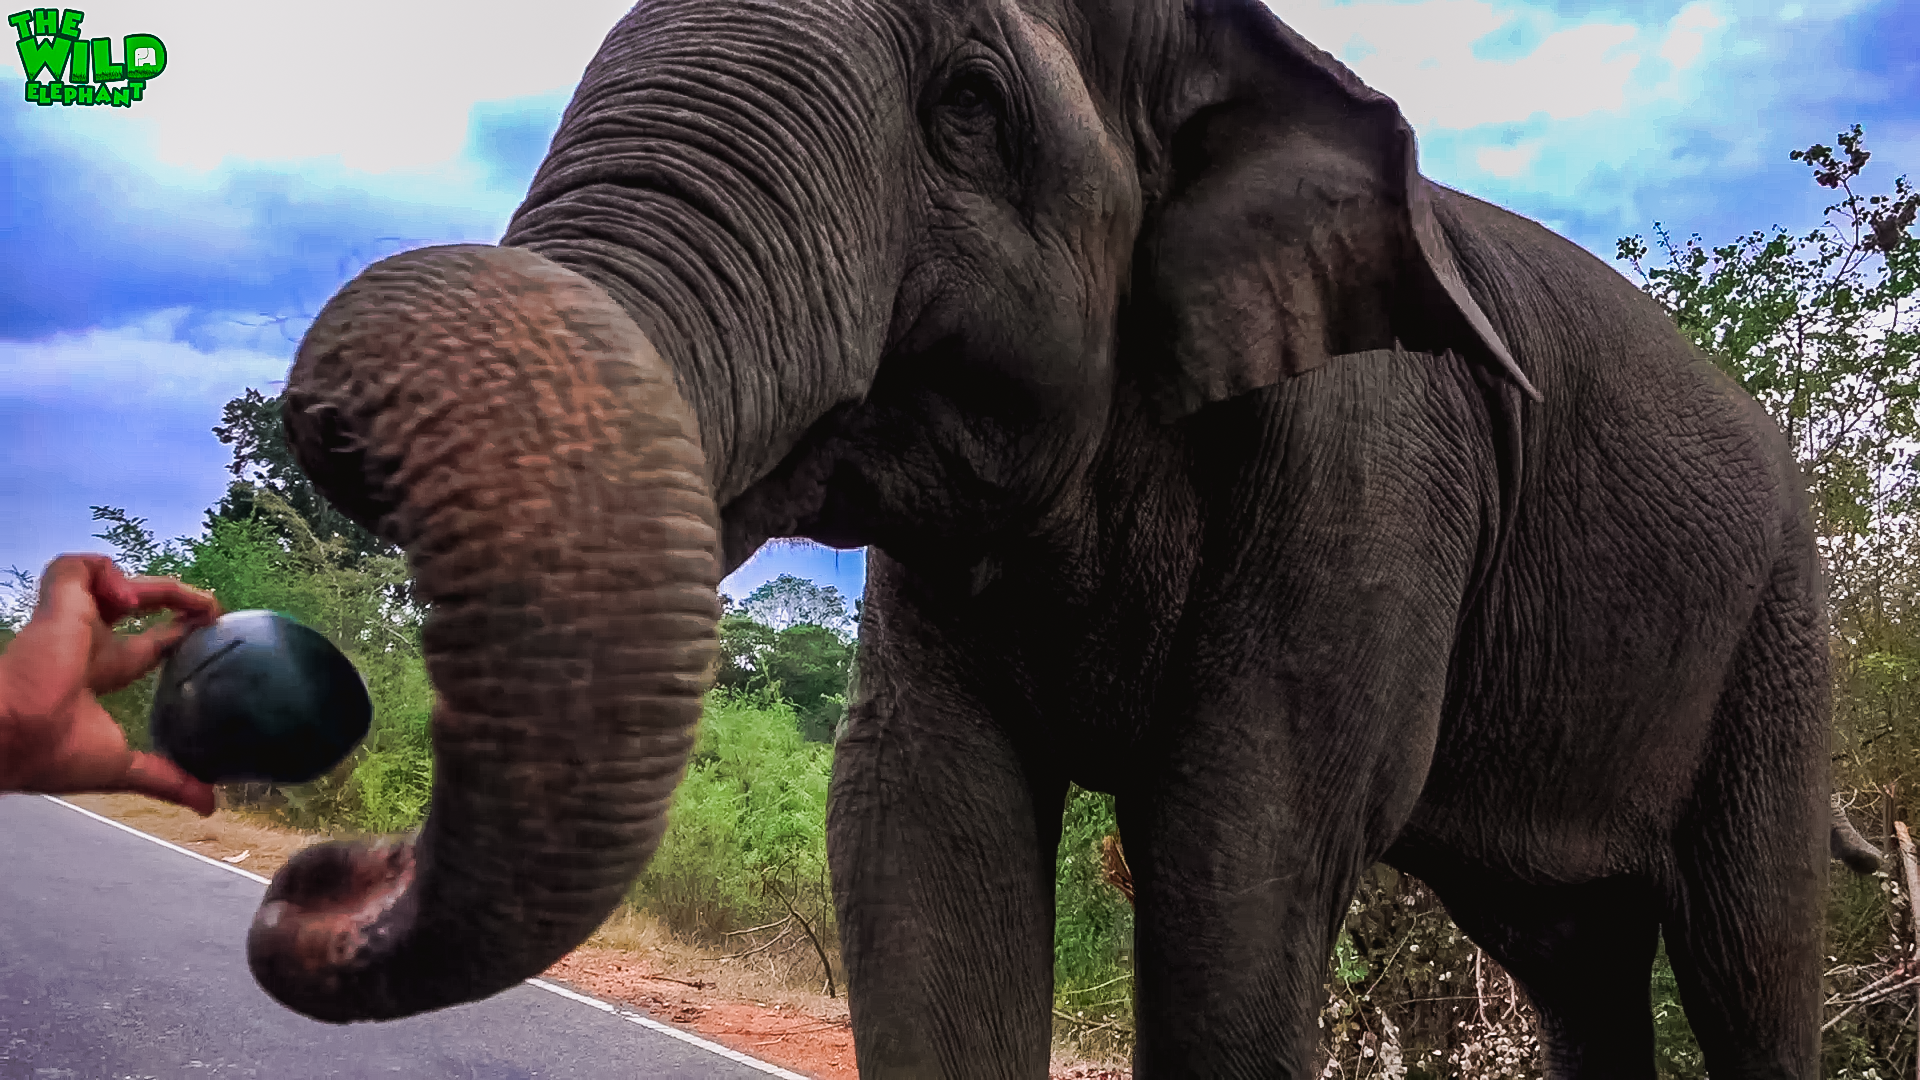 An elephant that takes bribes for a road pass caught in the act